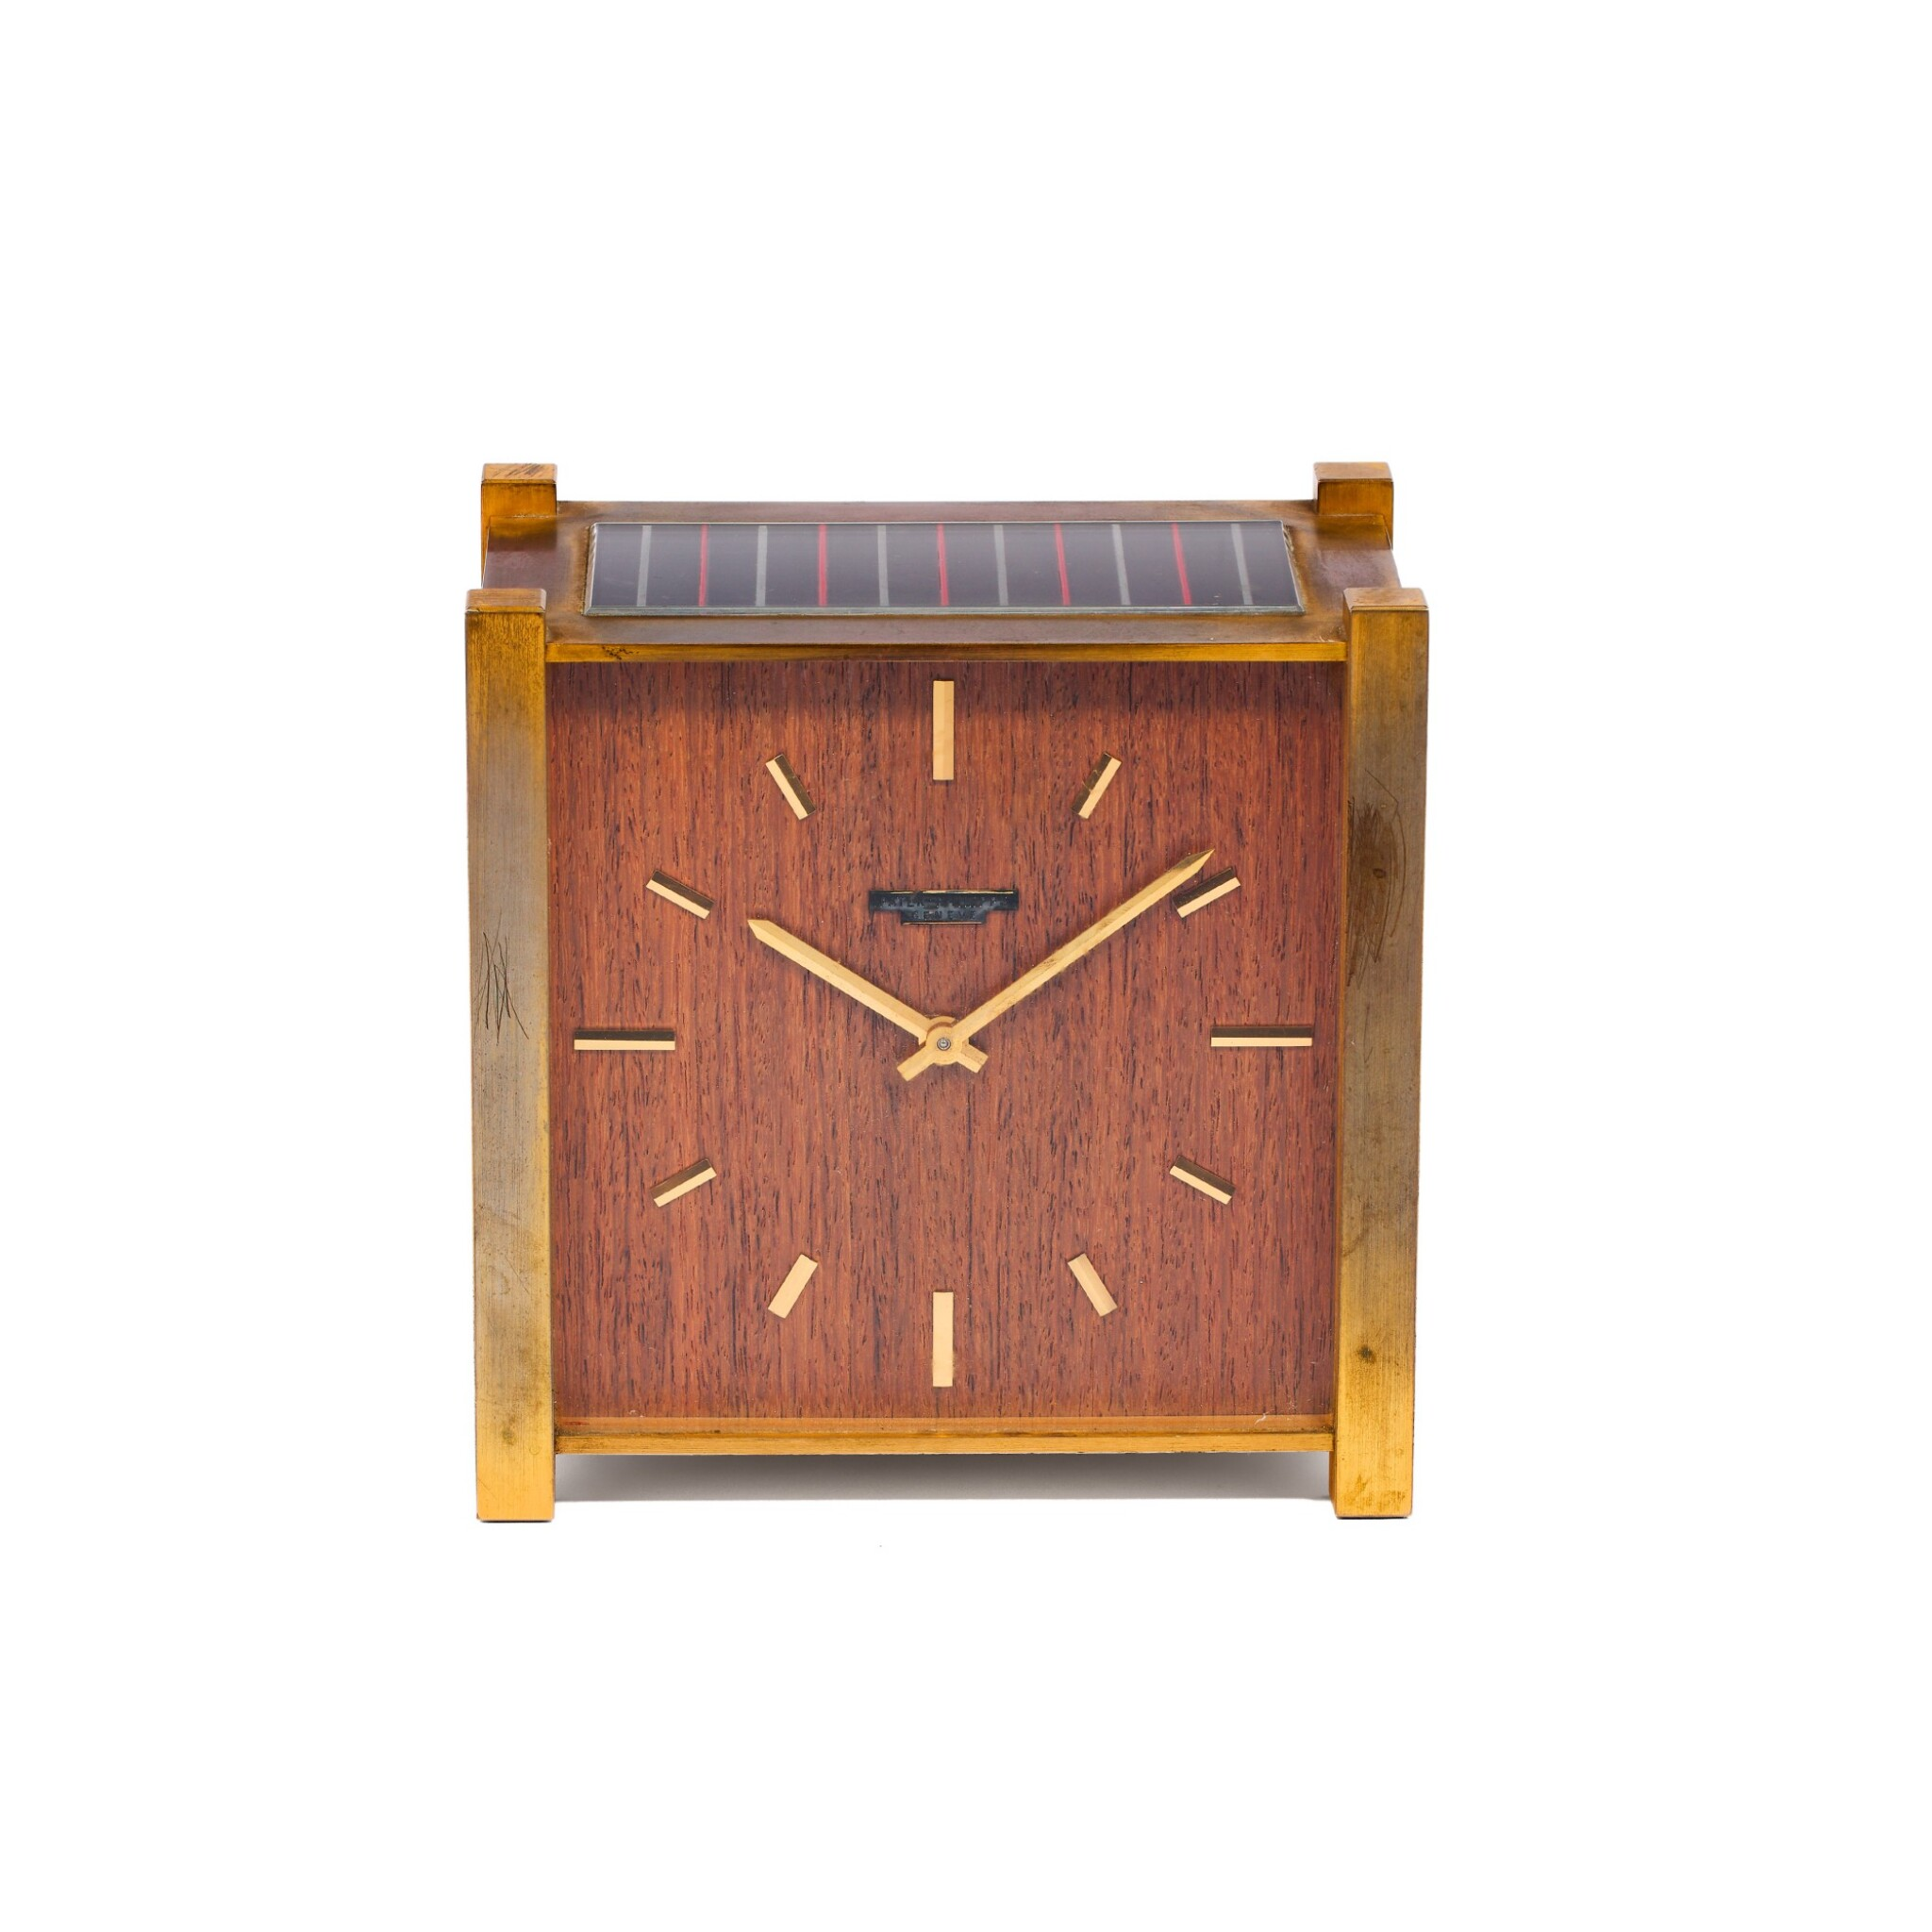 View full screen - View 1 of Lot 51. PATEK PHILIPPE   PENDULE CARRÉ A GILT BRASS AND WOOD SOLAR DESK TIMEPIECE, CIRCA 1960.